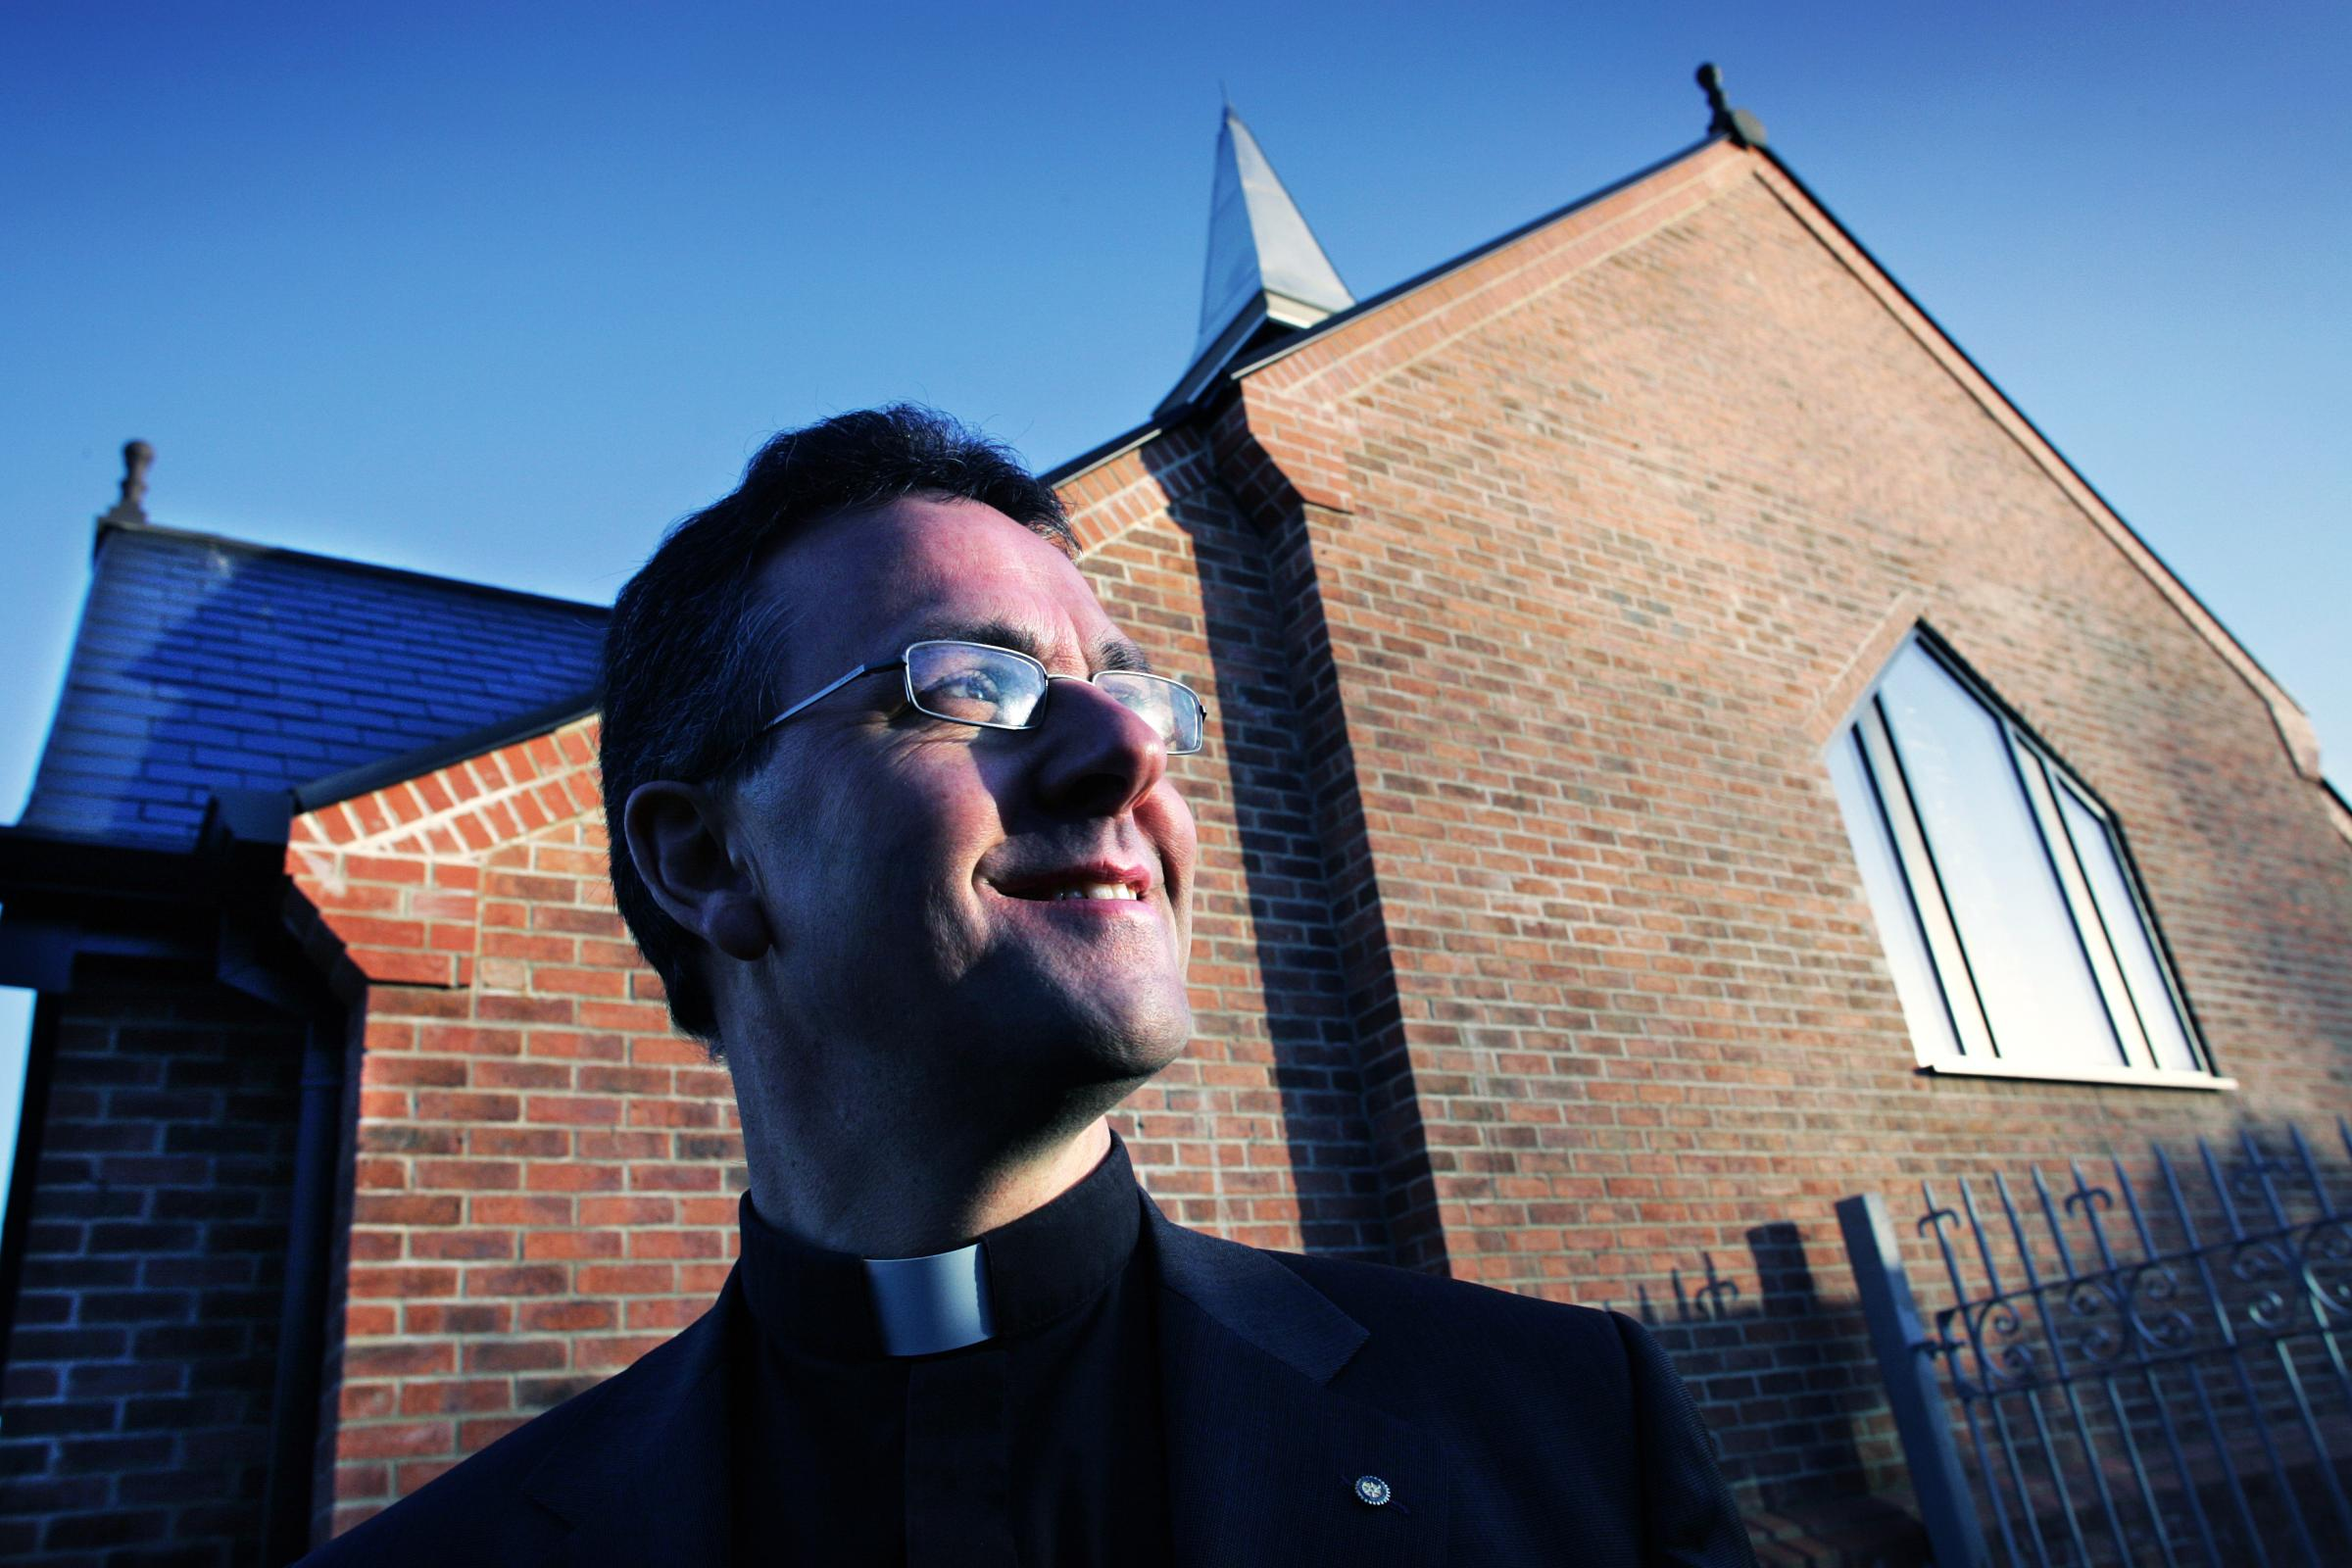 NEW ROLE: The Very Reverend Canon John Dobson, who is moving from Darlington to Ripon